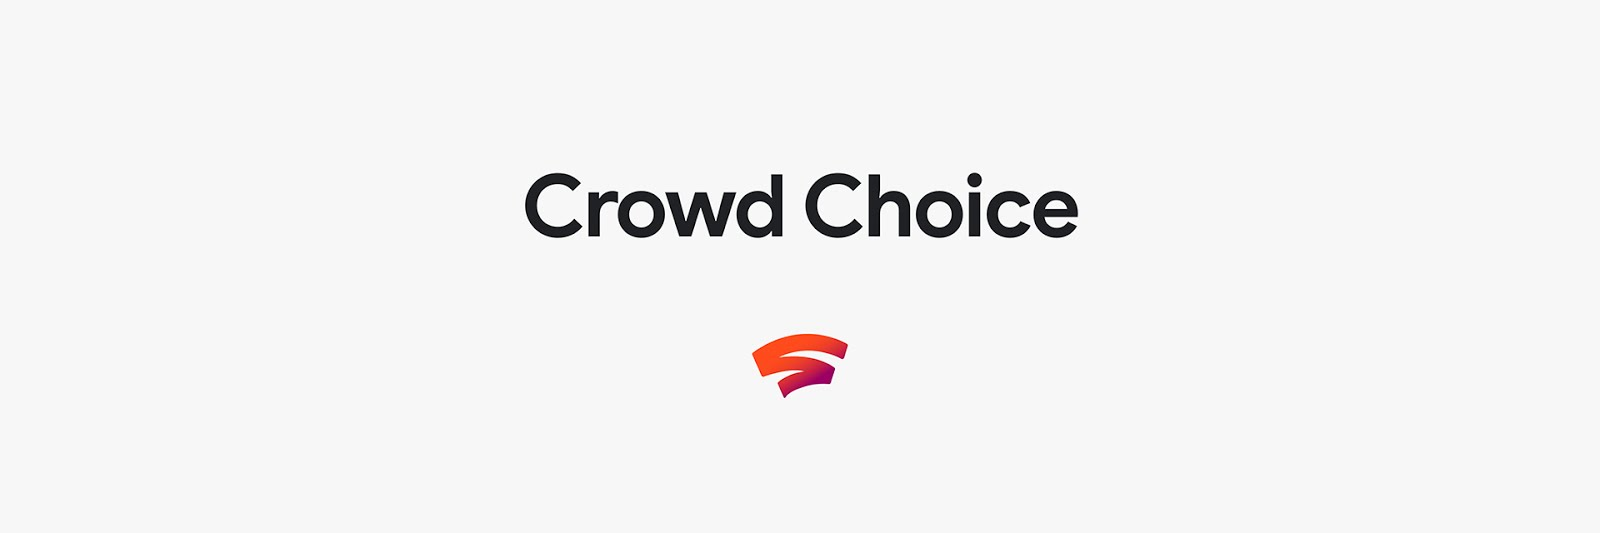 Engage The Crowd With Crowd Choice Image